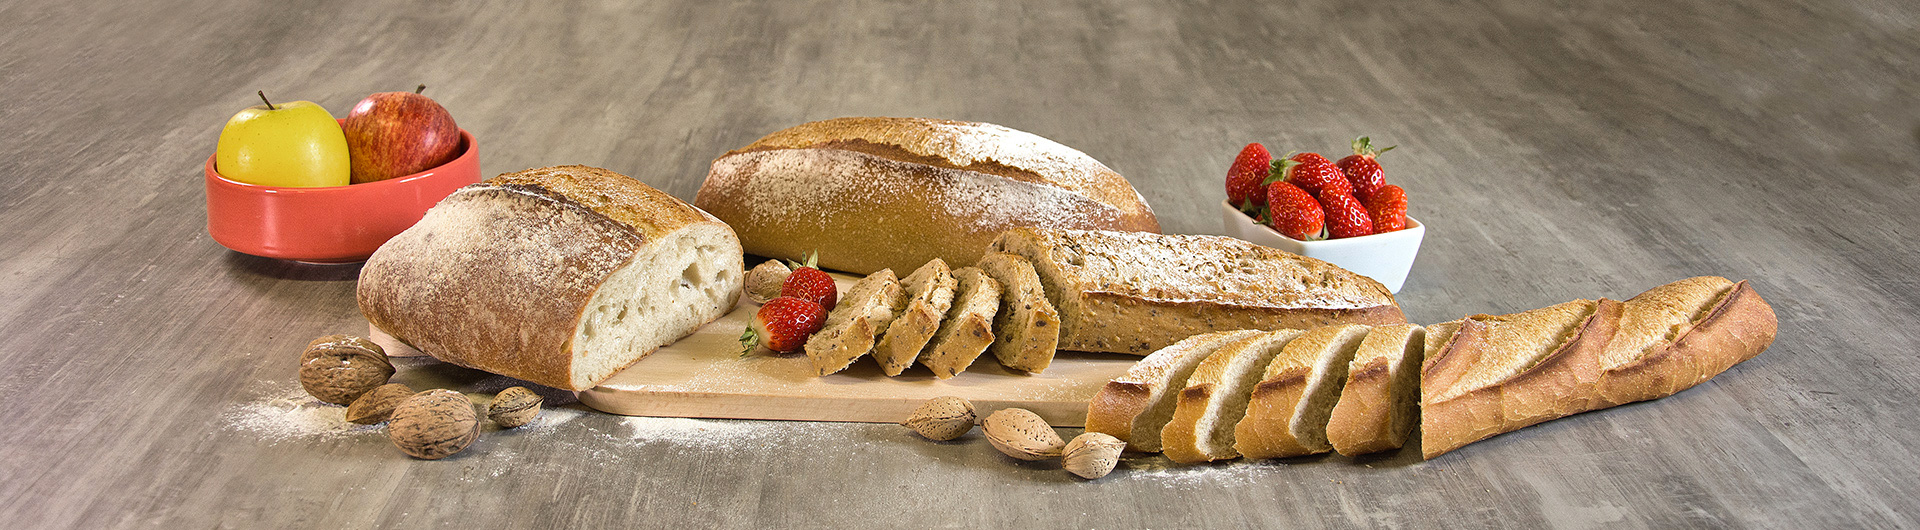 SUSTAINABLY FARMED BREADS